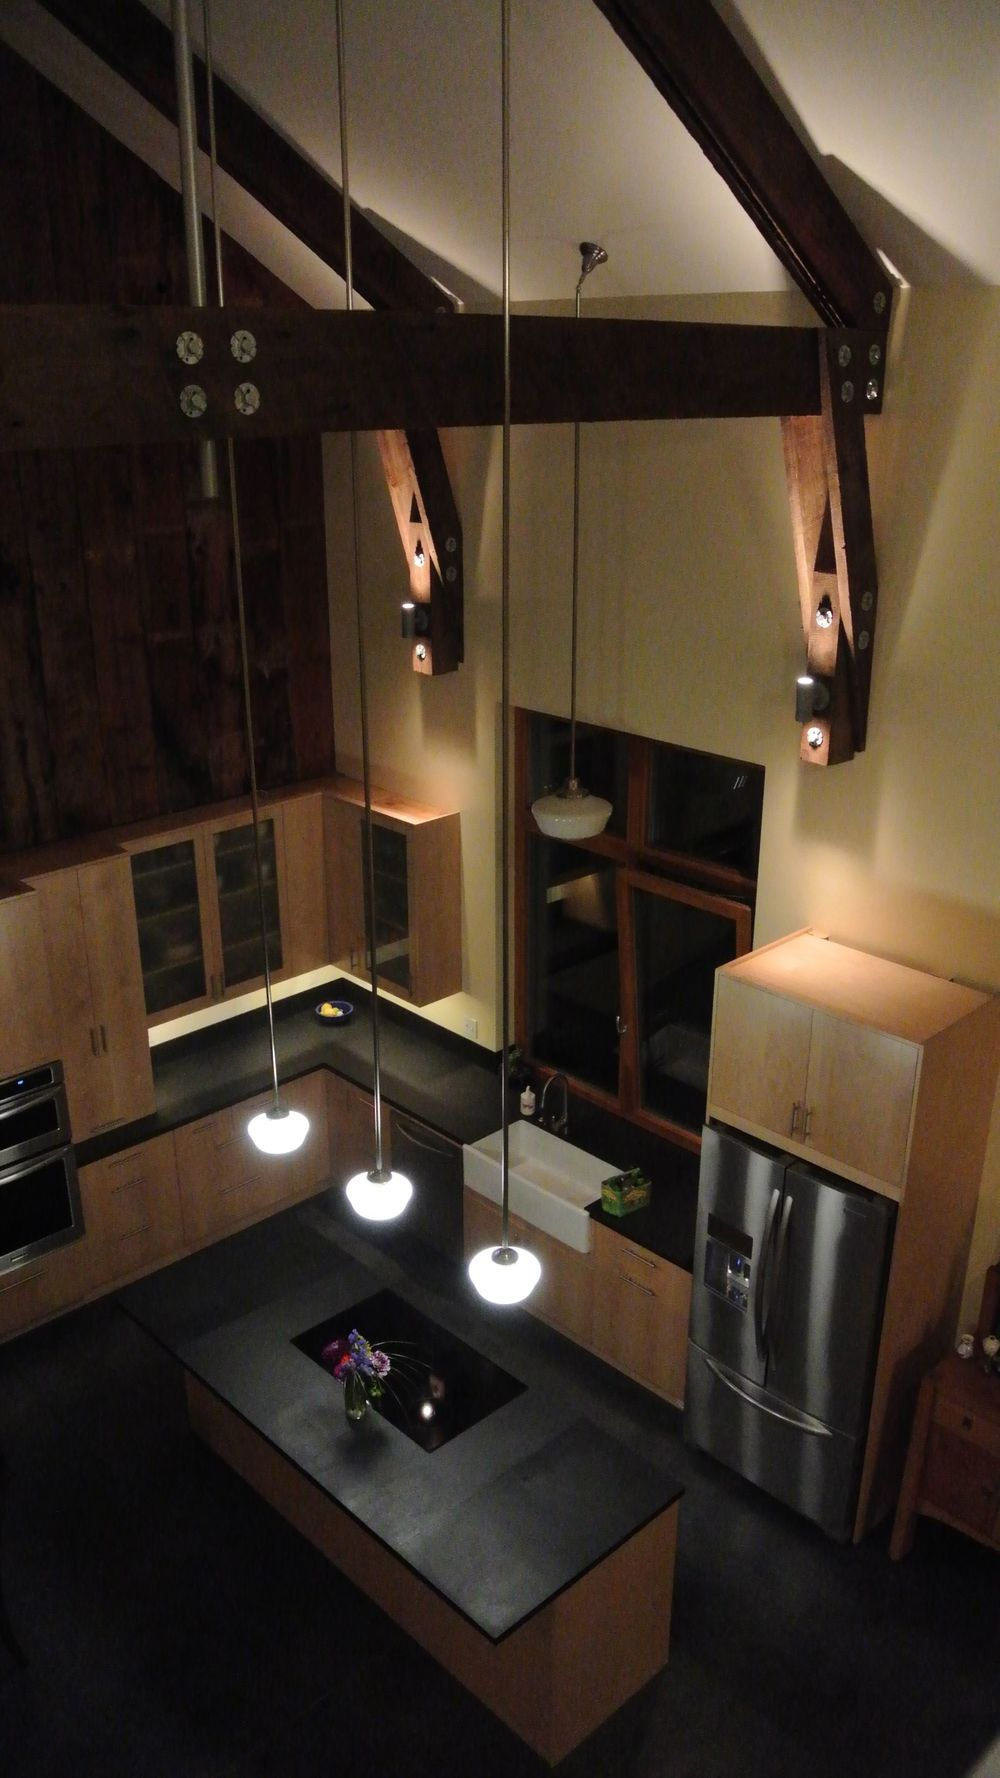 kitchen at night.jpg